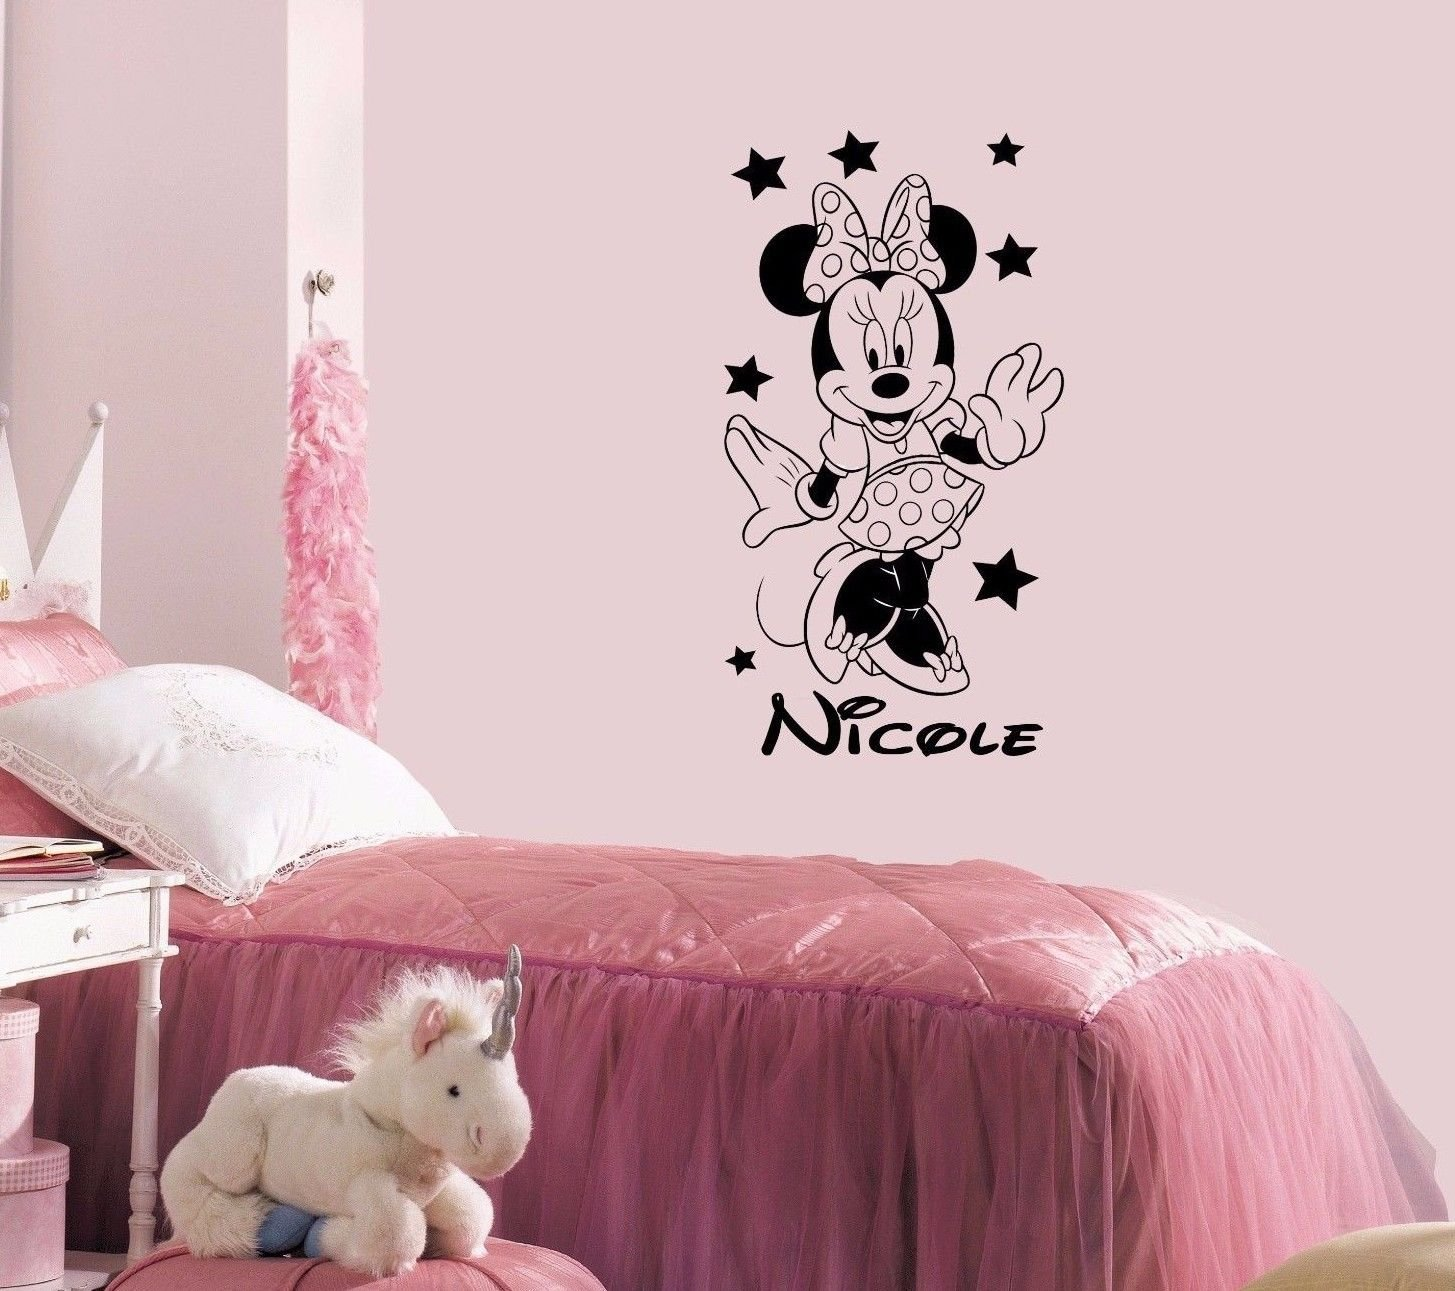 Beau Amazon.com: Name Wall Decal Minnie Mouse Disney Vinyl Decals Sticker Custom  Decals Personalized Baby Girl Name Decor Bedroom Nursery Baby Room Decor  ZX58: ...